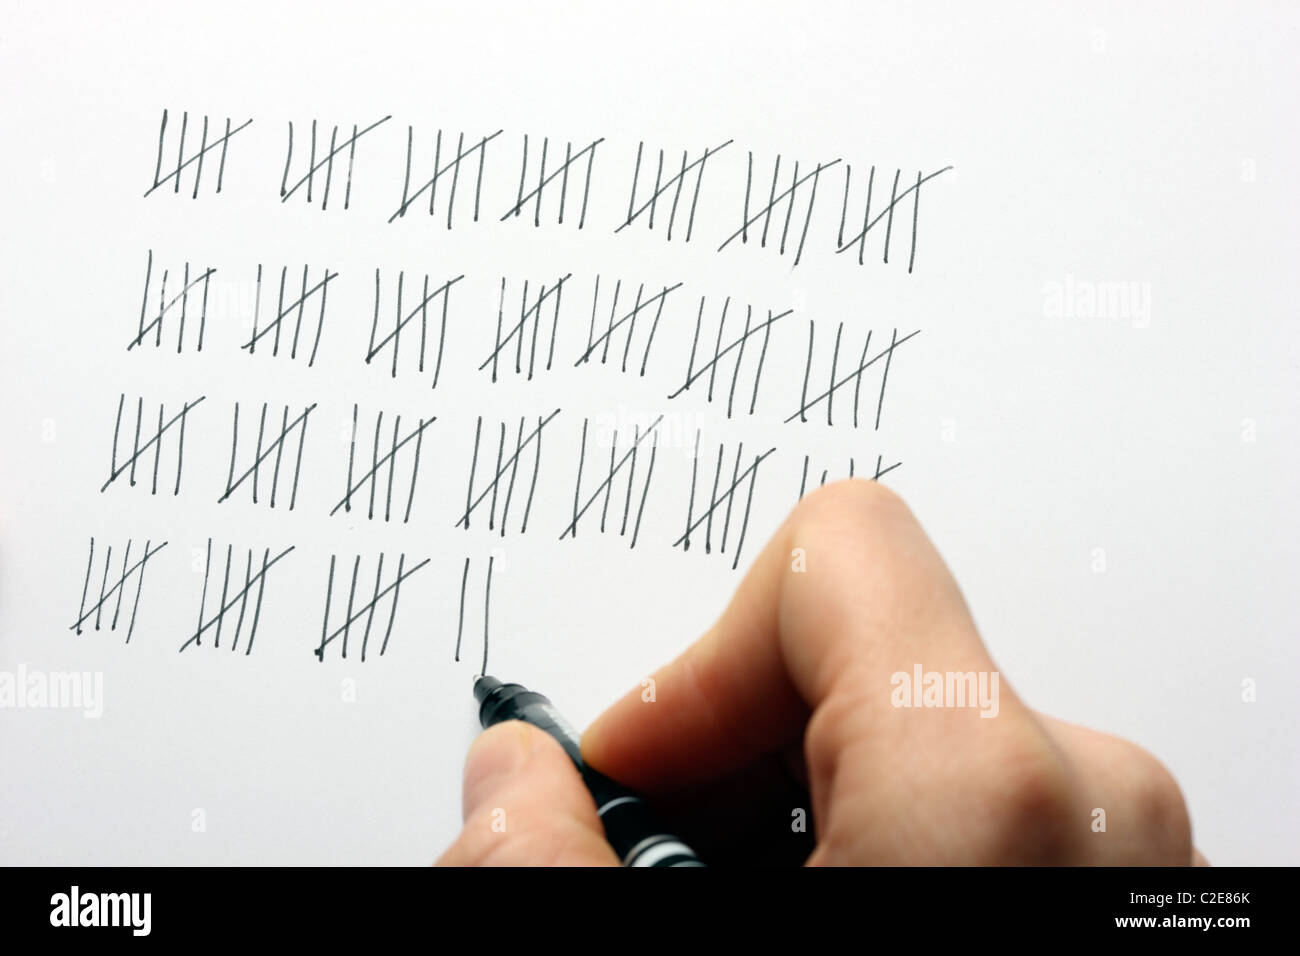 Tally clerk, counting things, check list. - Stock Image